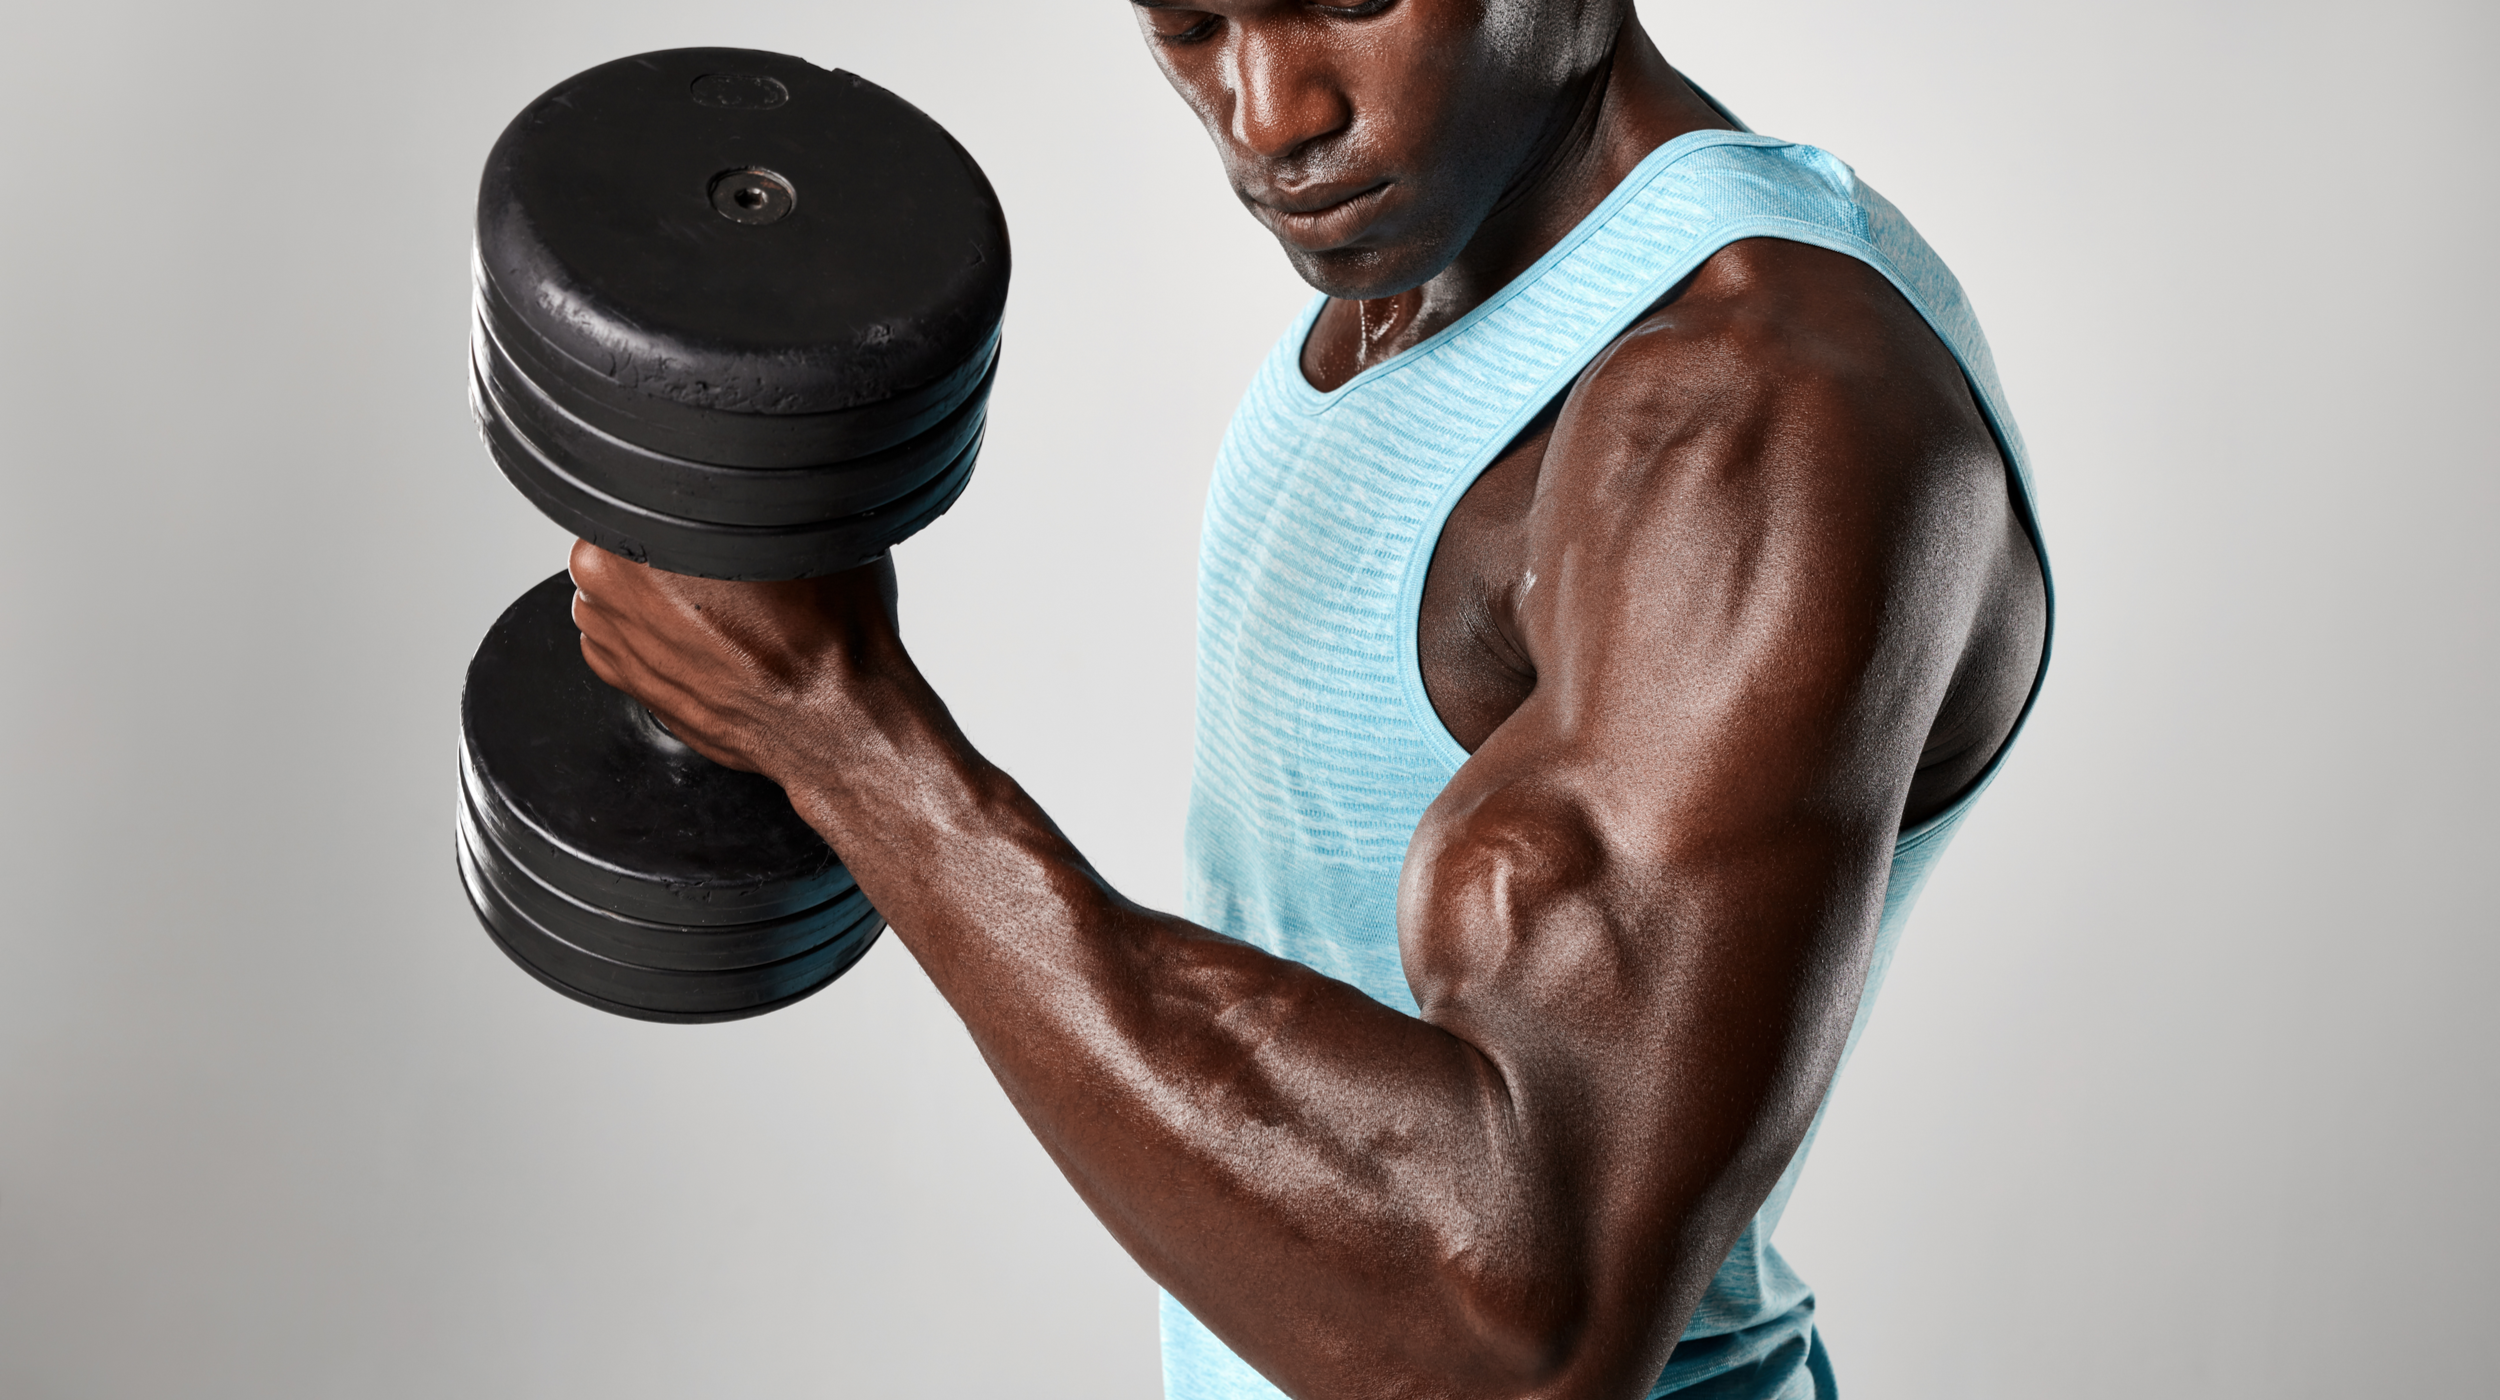 Best Resistance Training Exercises if You Want to Grow Your Arms